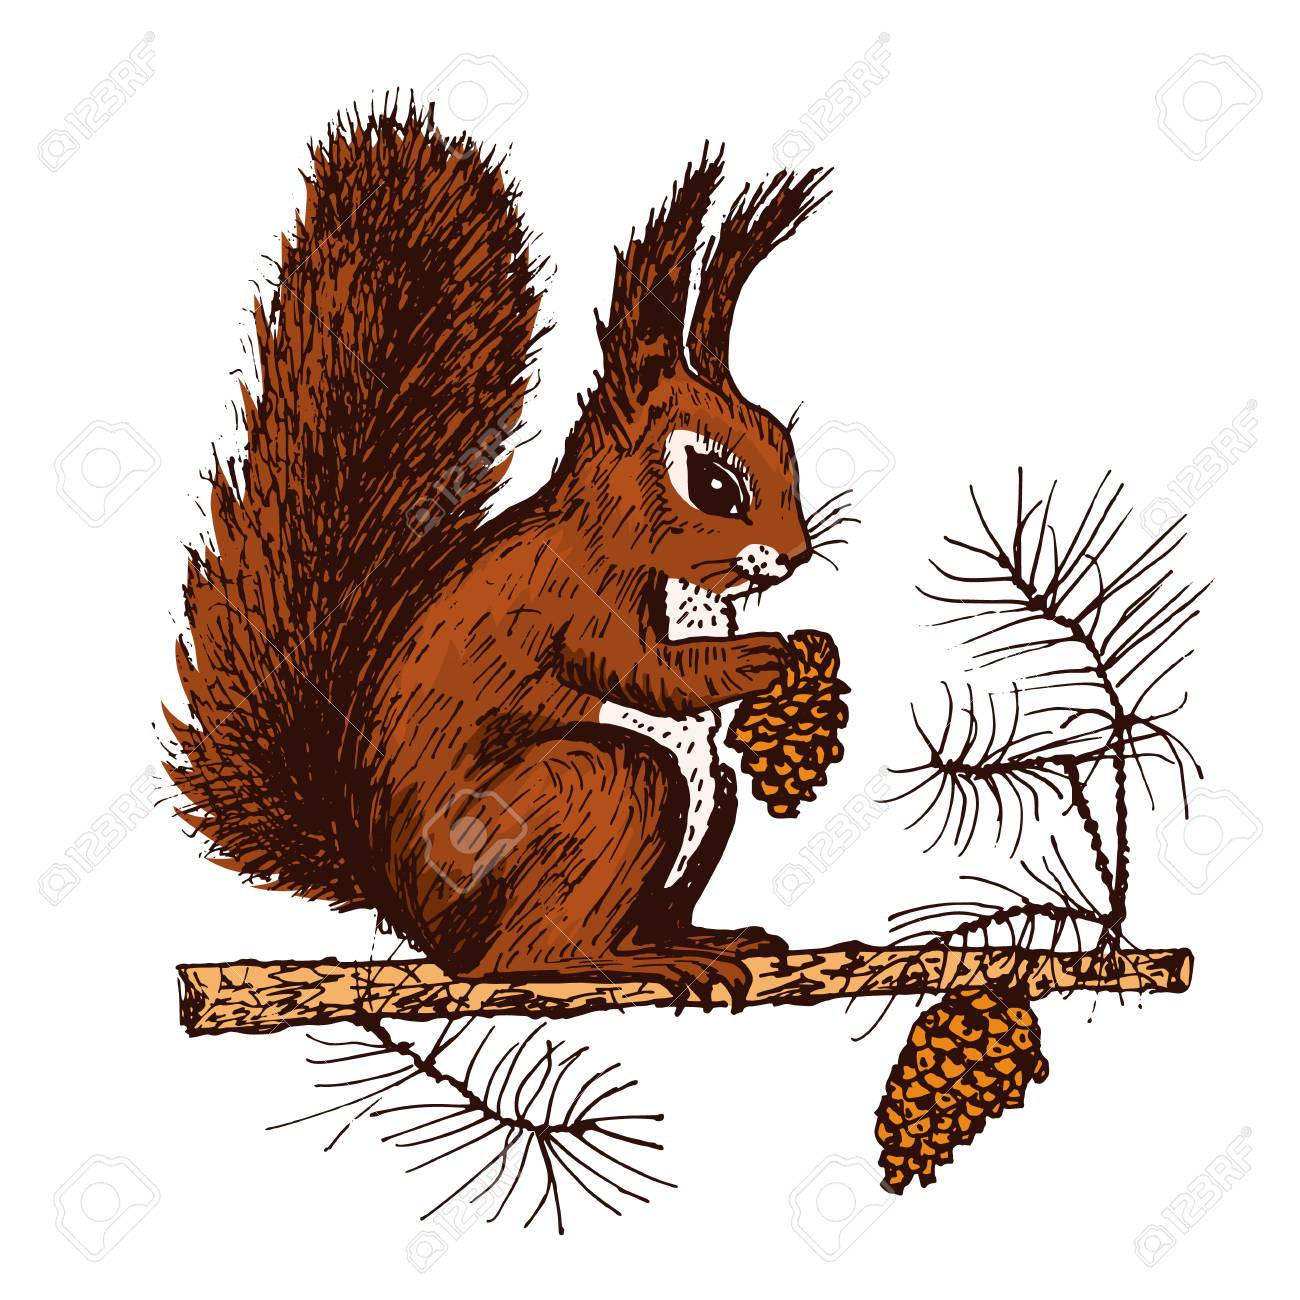 Christmas Squirrel.Christmas Squirrel And Animal With Fir Cone In The Forest Winter